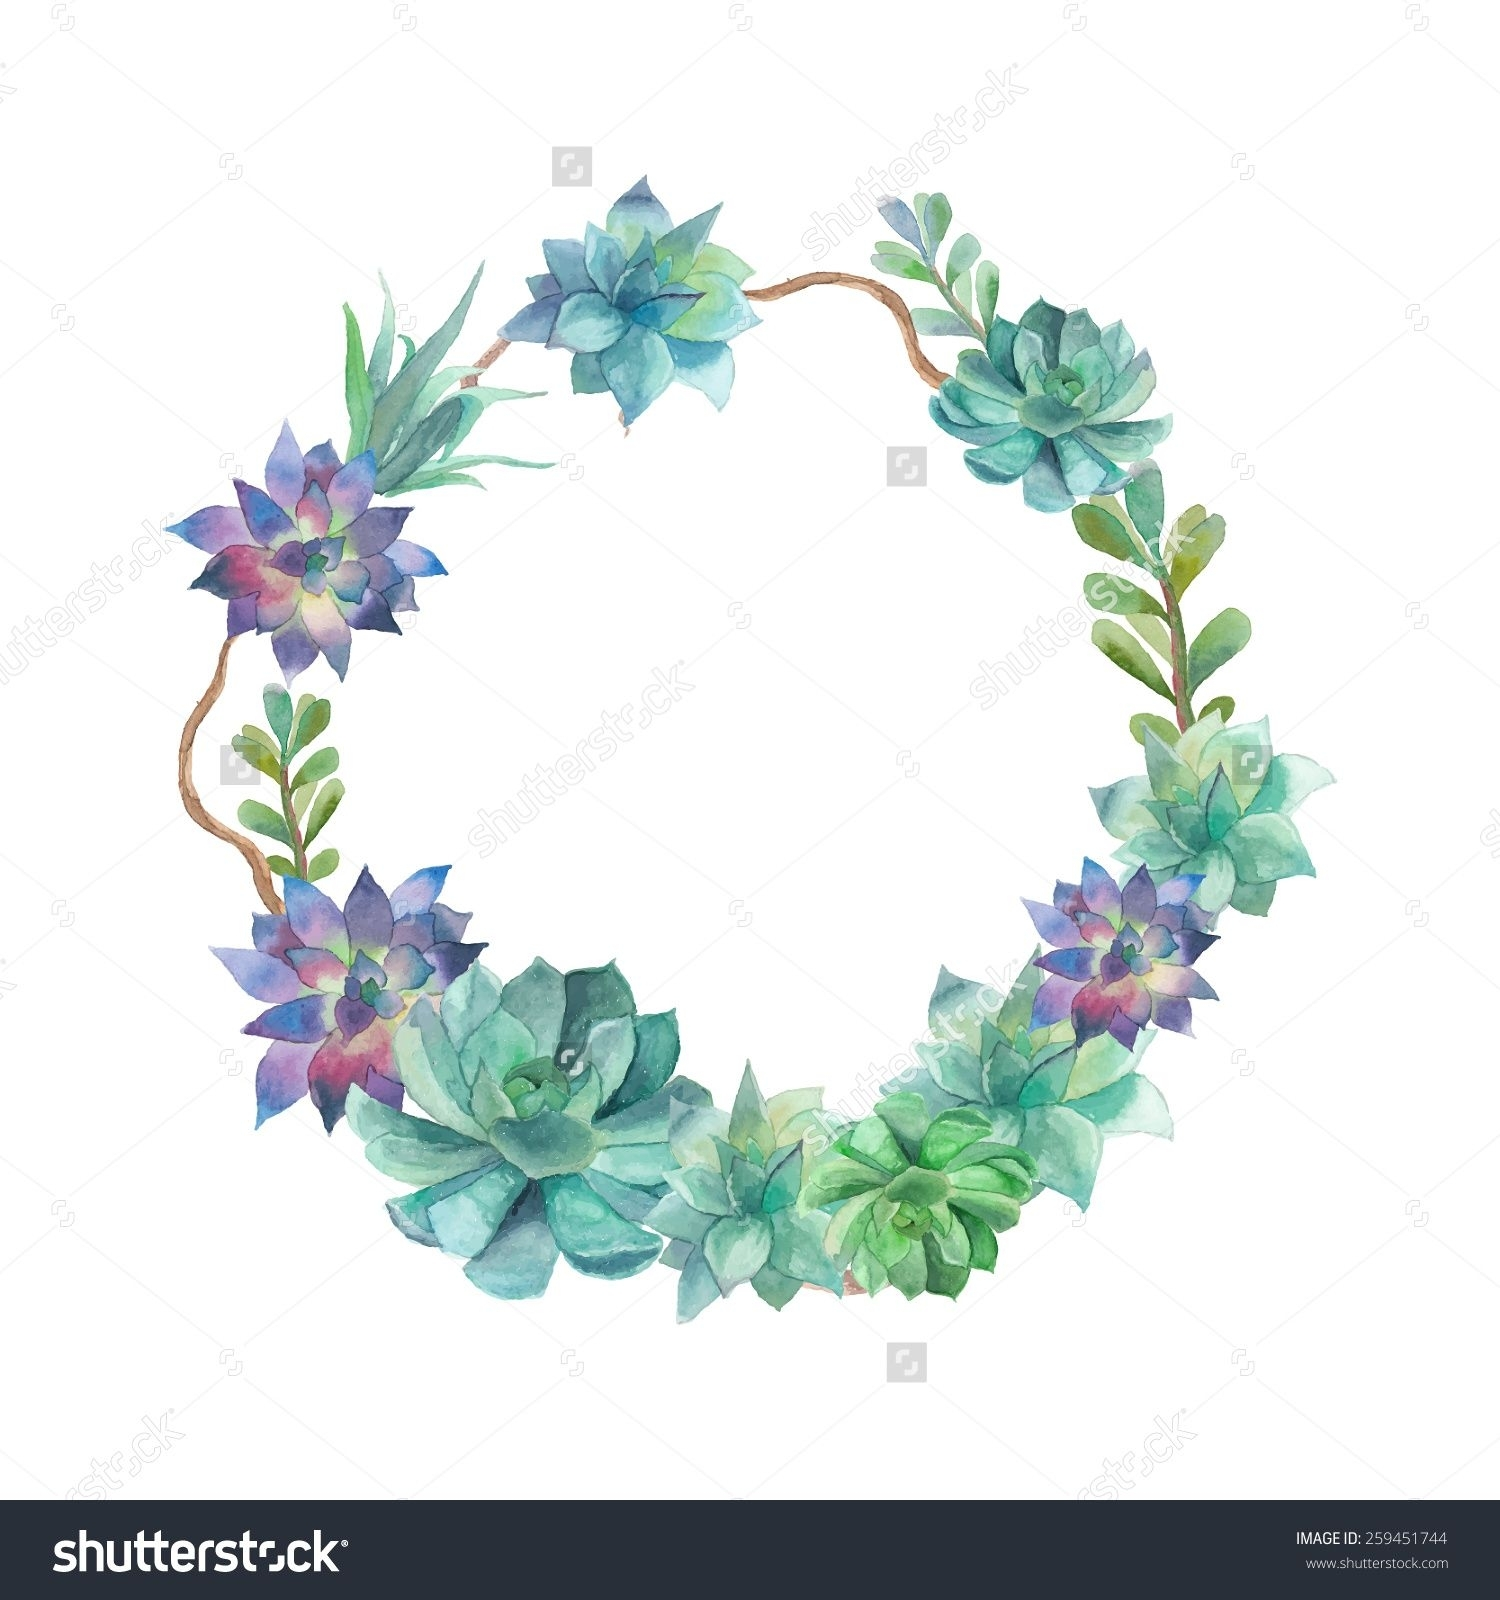 Watercolor Succulents Wreath (View 15 of 15)